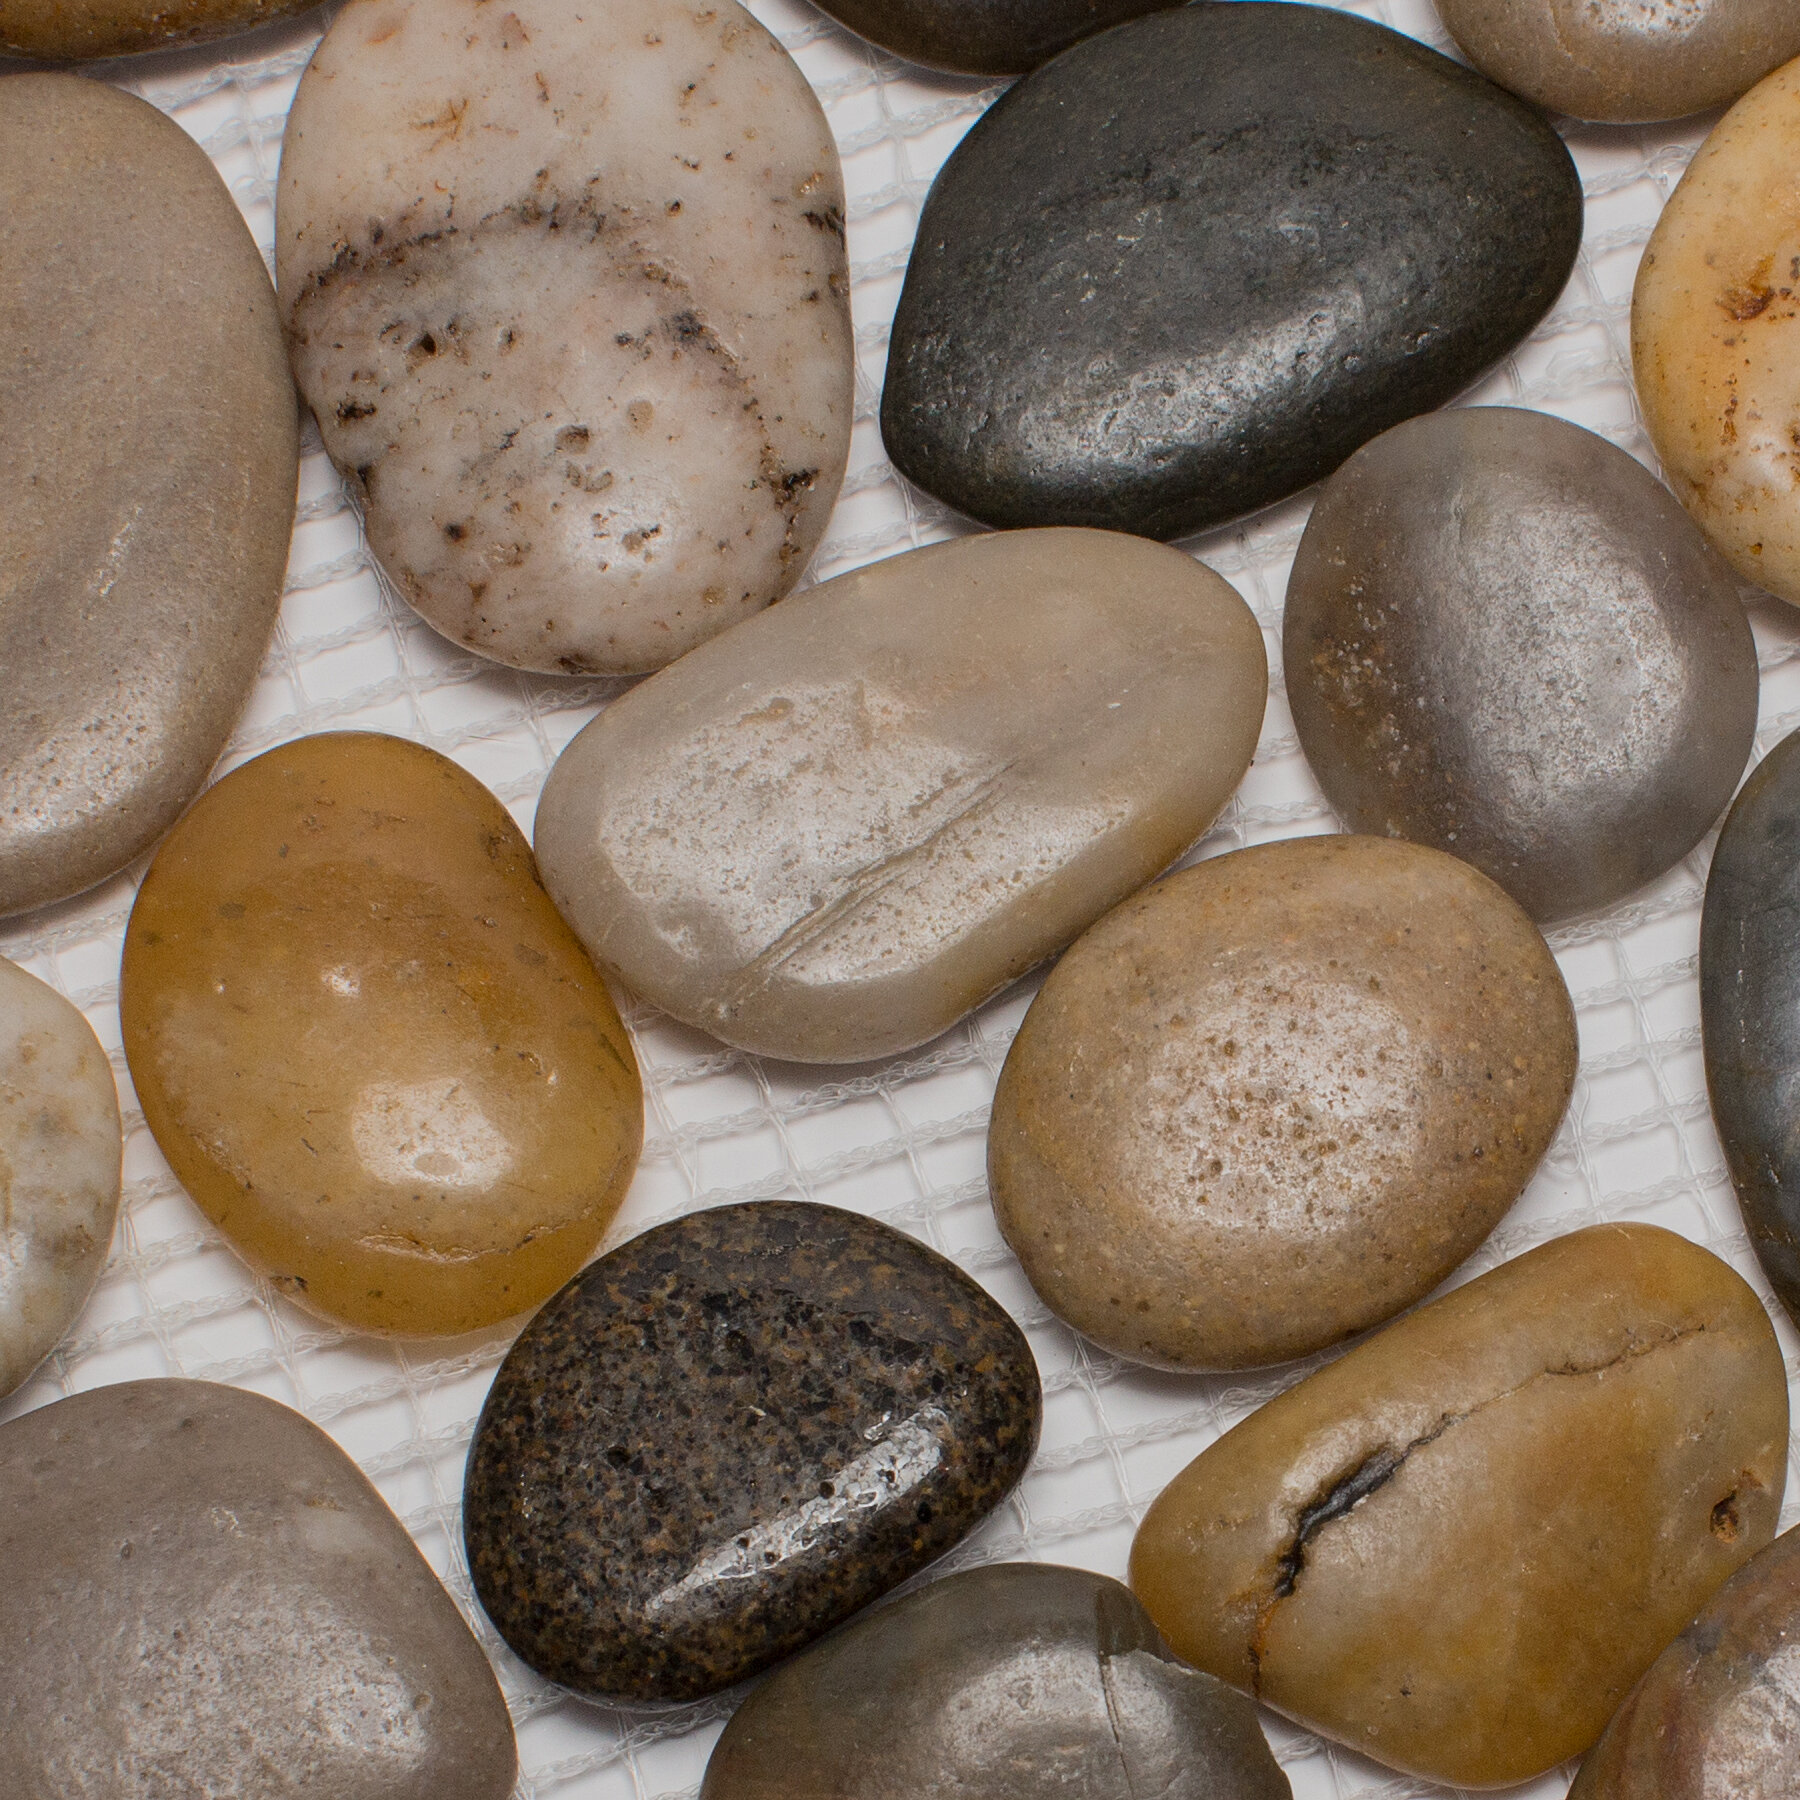 Mixed Pebble Natural Stone Tile In Brown Black